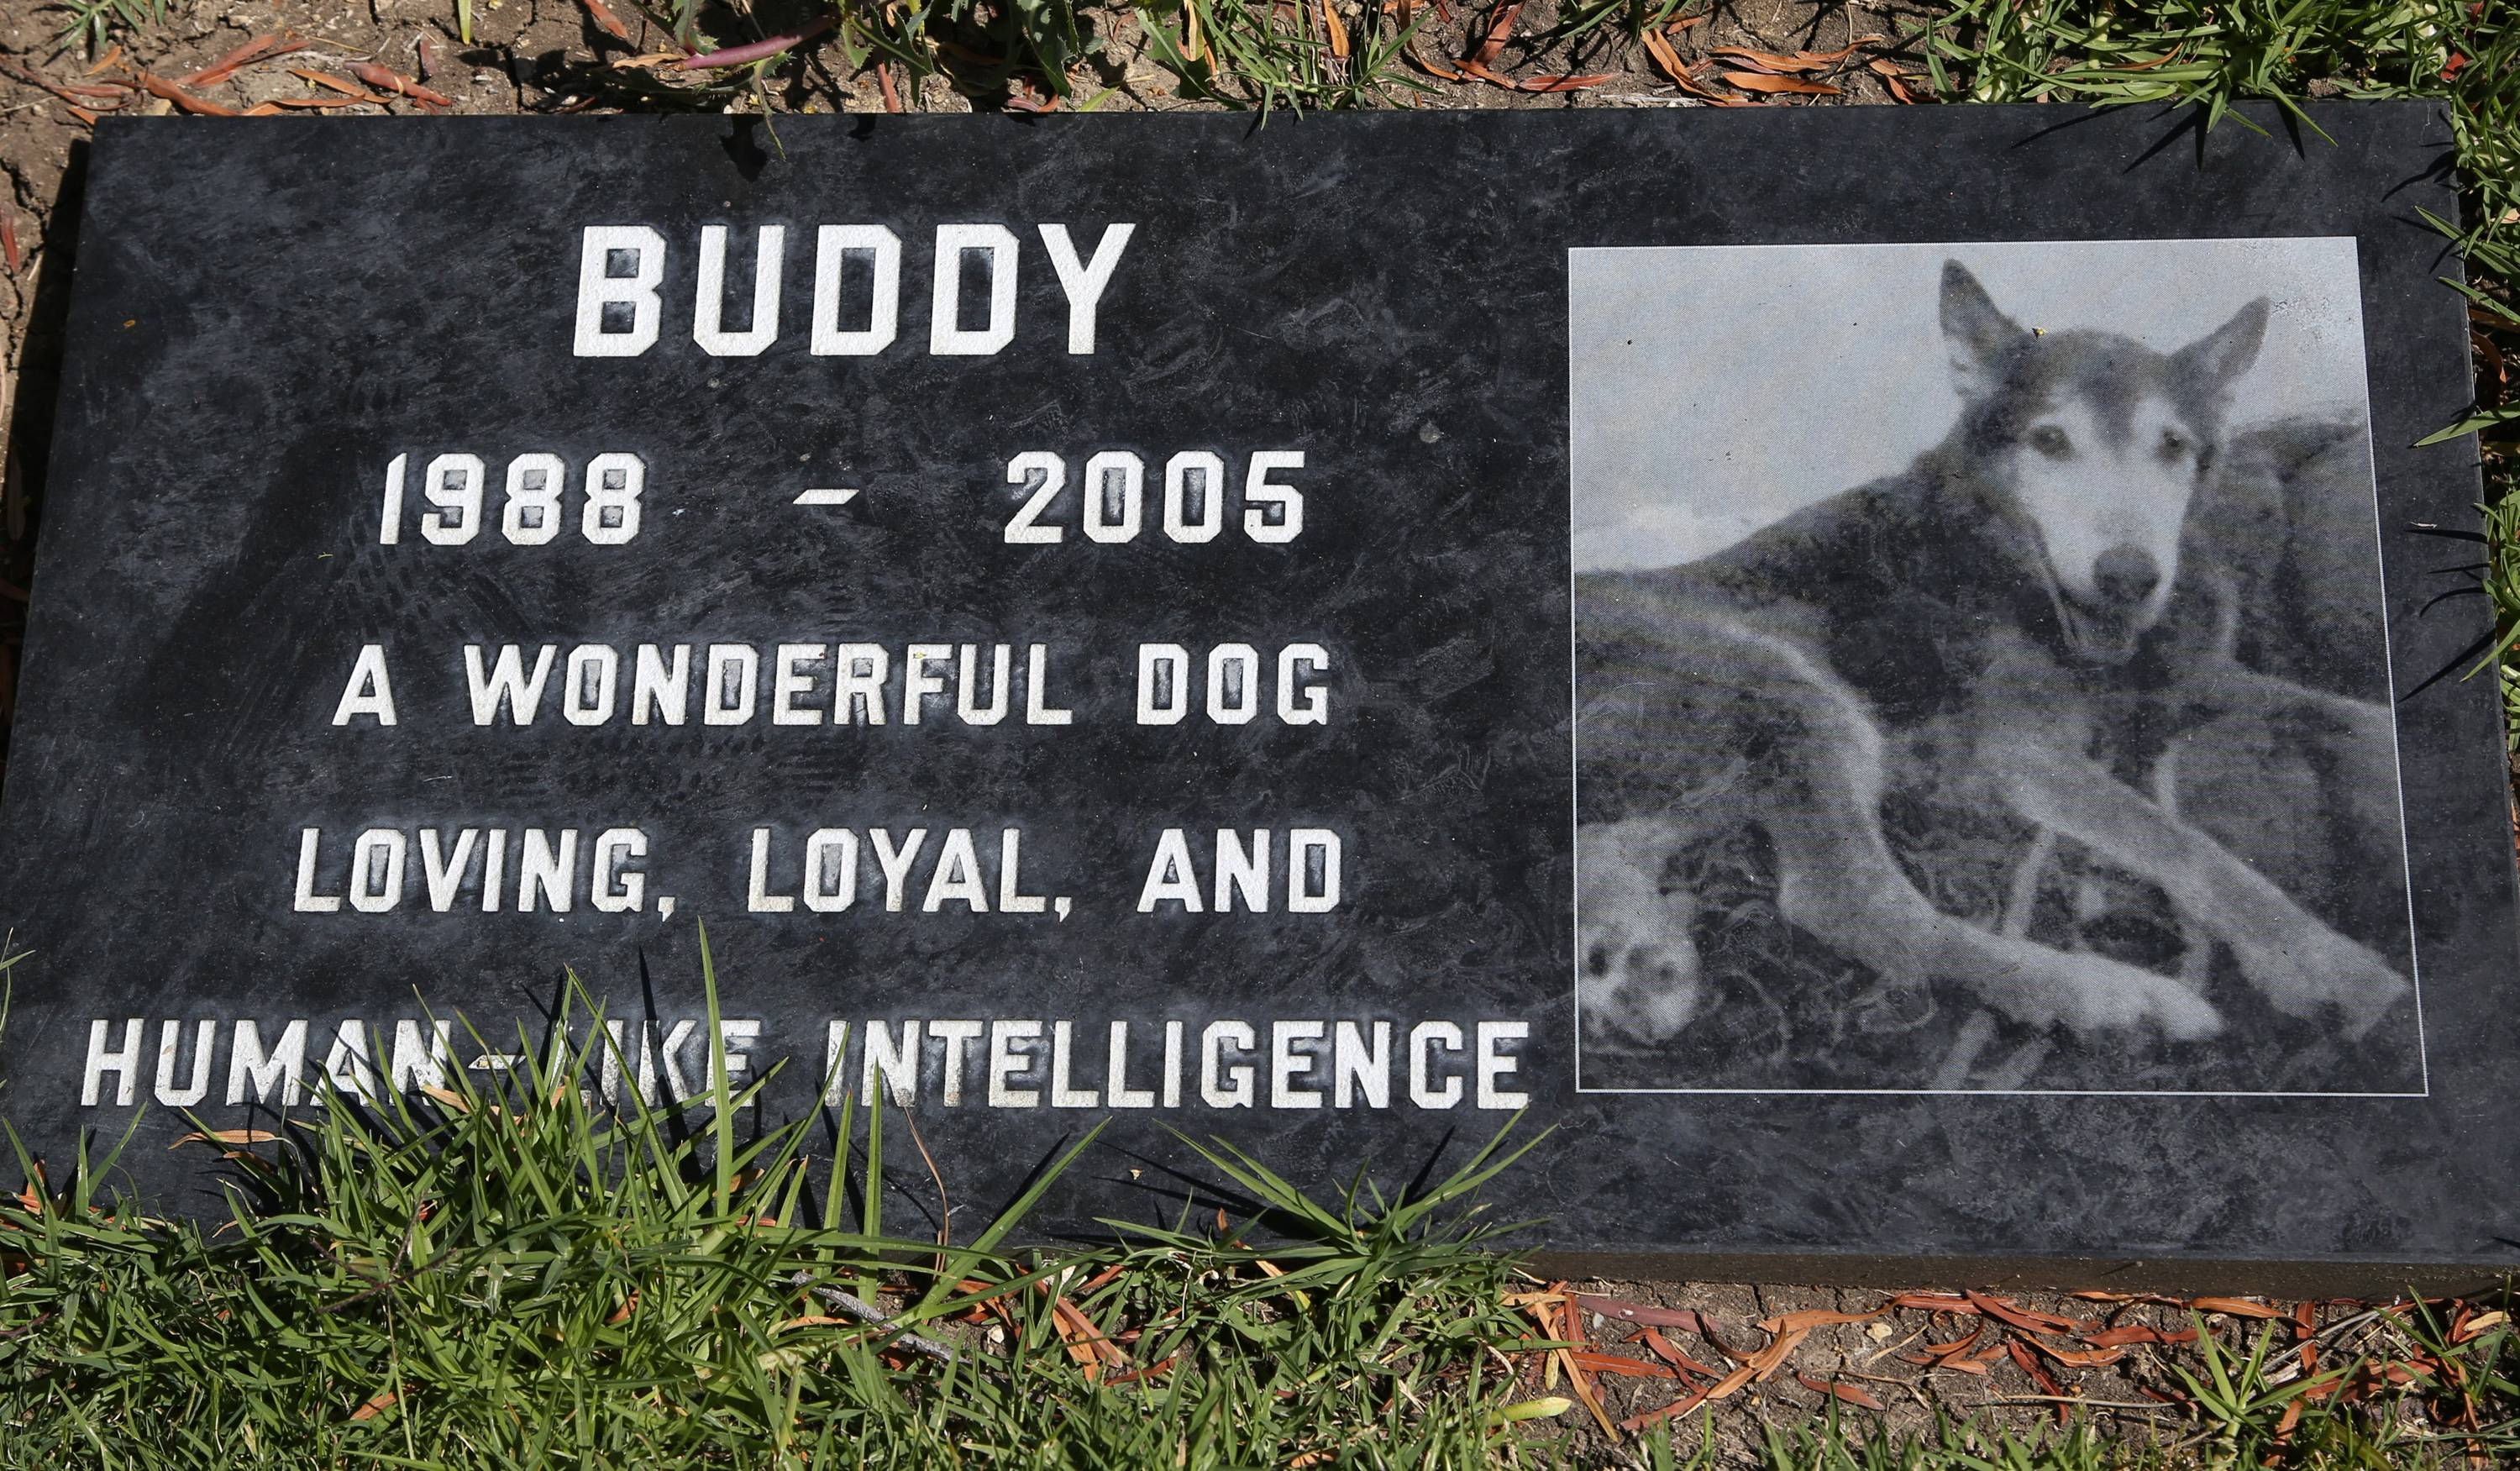 Saying goodbye to a beloved dog or cat is hard. This grave marker for Buddy is how one family memorialized their pet at the Los Angeles Pet Cemetery in Calabasas, Calif.